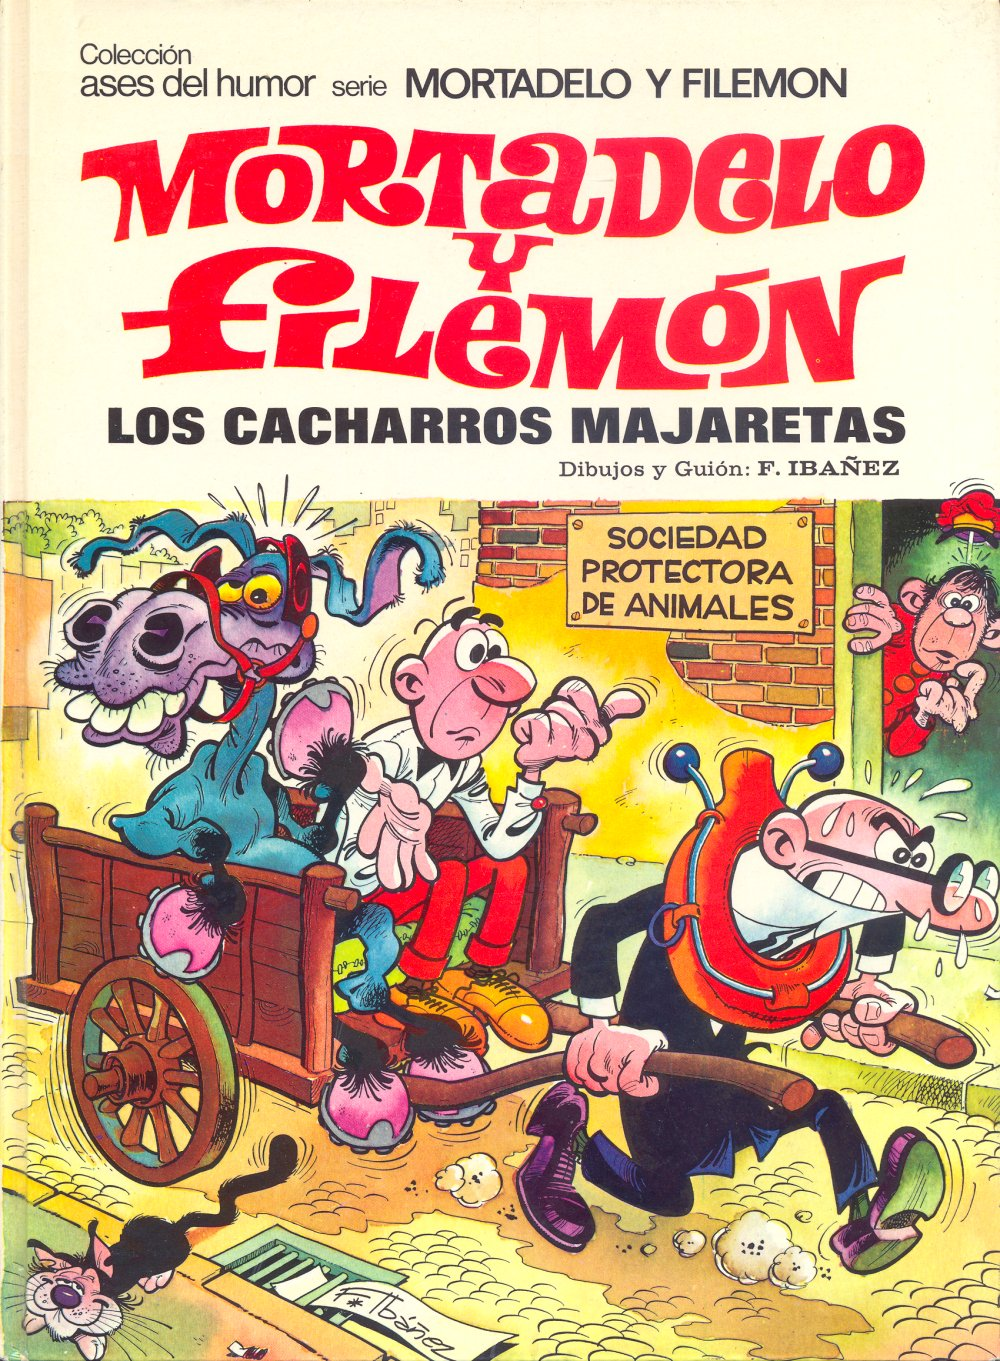 Los Cacharros Majaretas - Mortadelo y Filemón